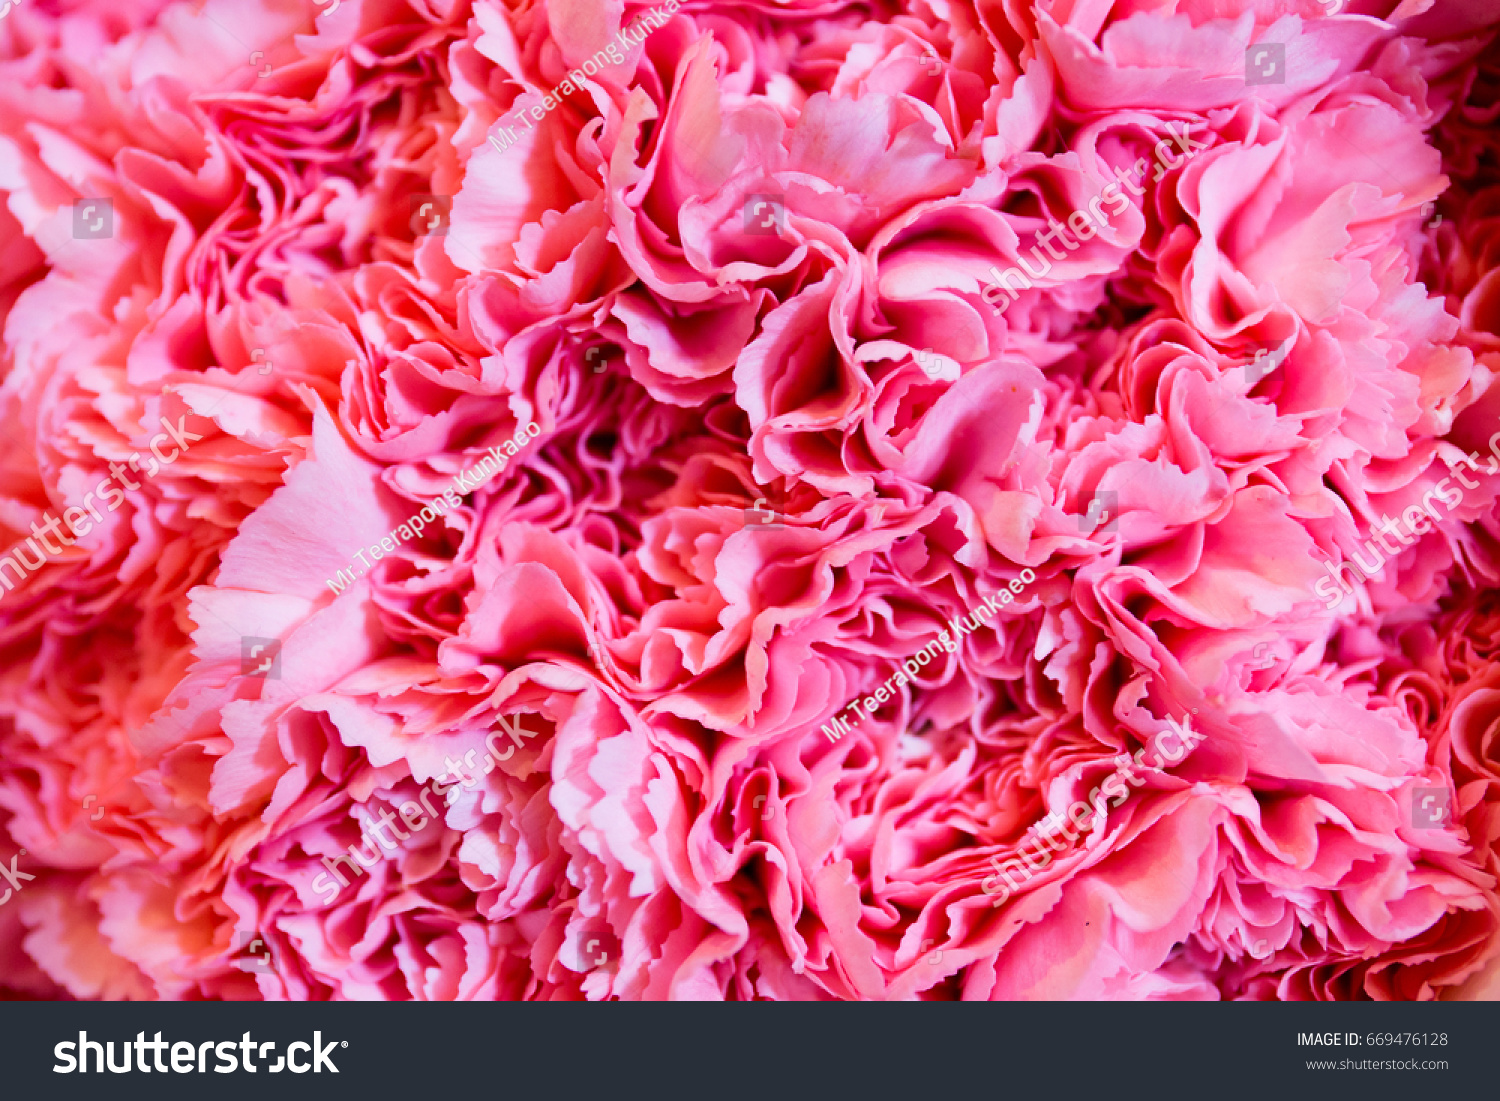 Pink Fake Flowers Background Texture Stock Photo 669476128